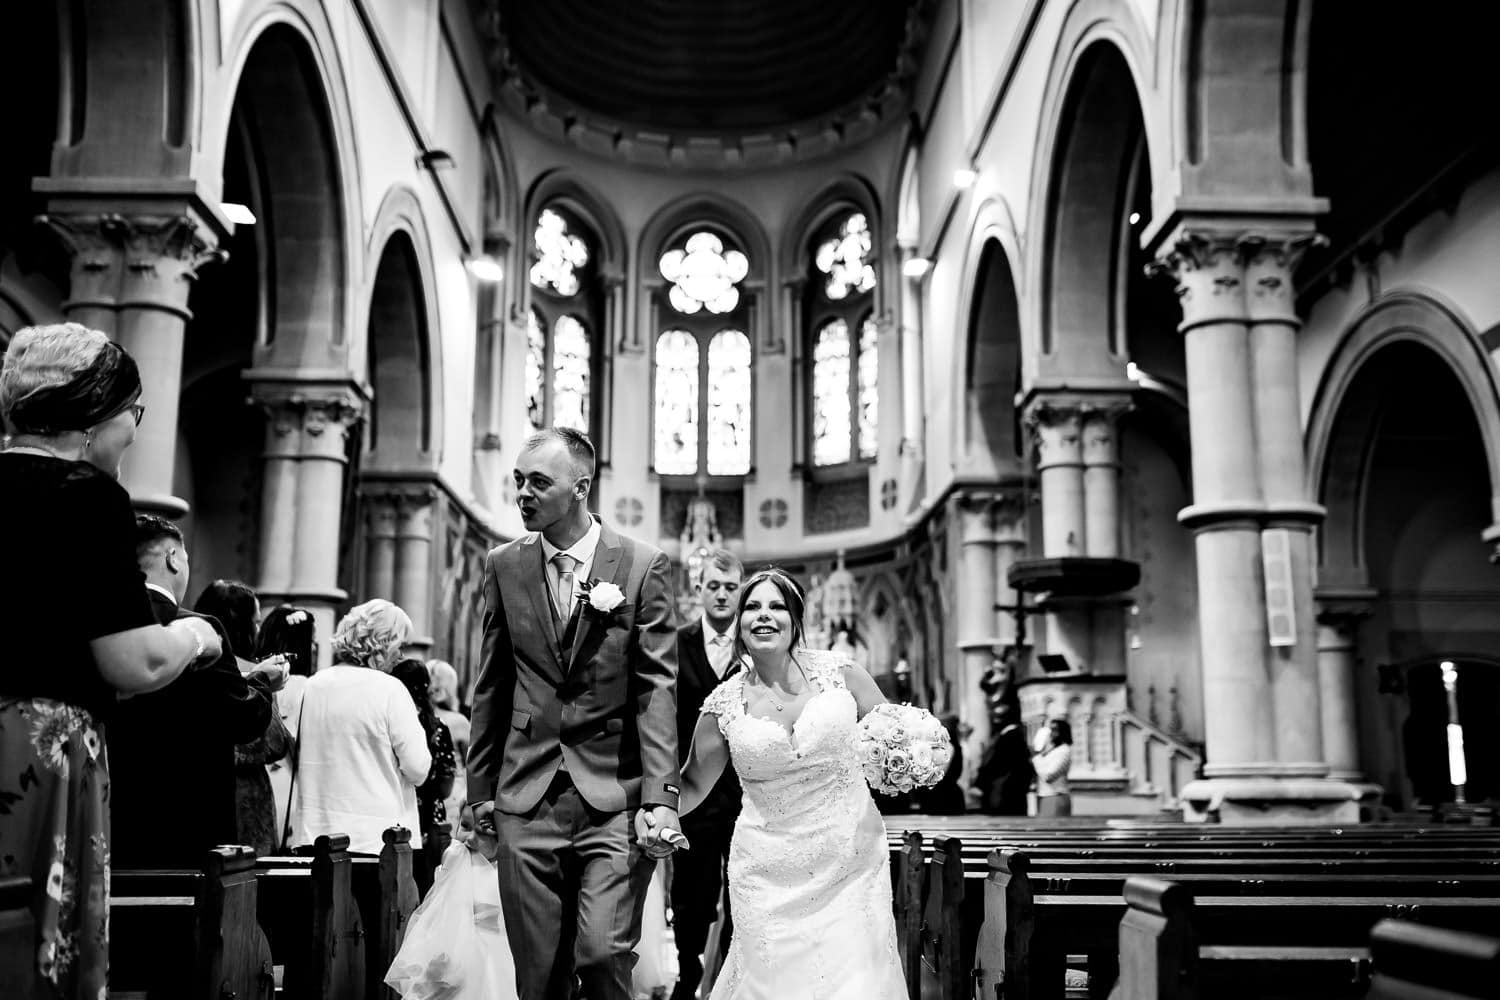 newlyweds walk down the aisle captures by Warwickshire Wedding Photographers